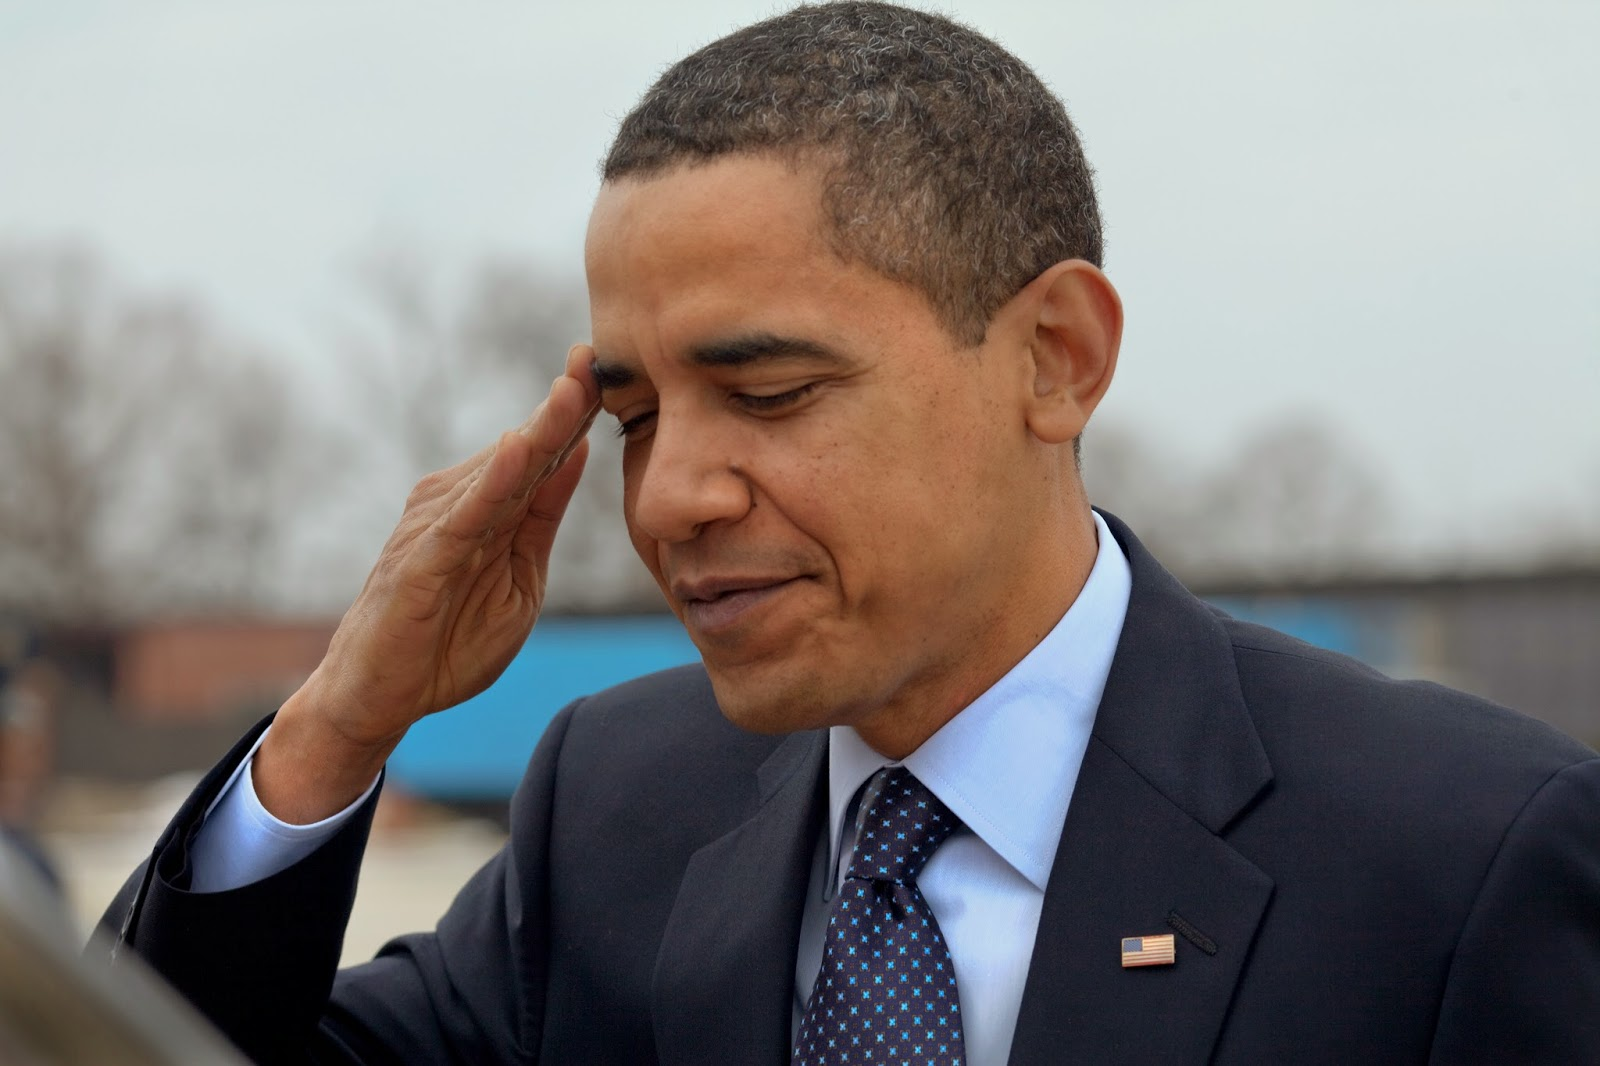 Barack Obama half-heartedly salutes U.S. soldiers